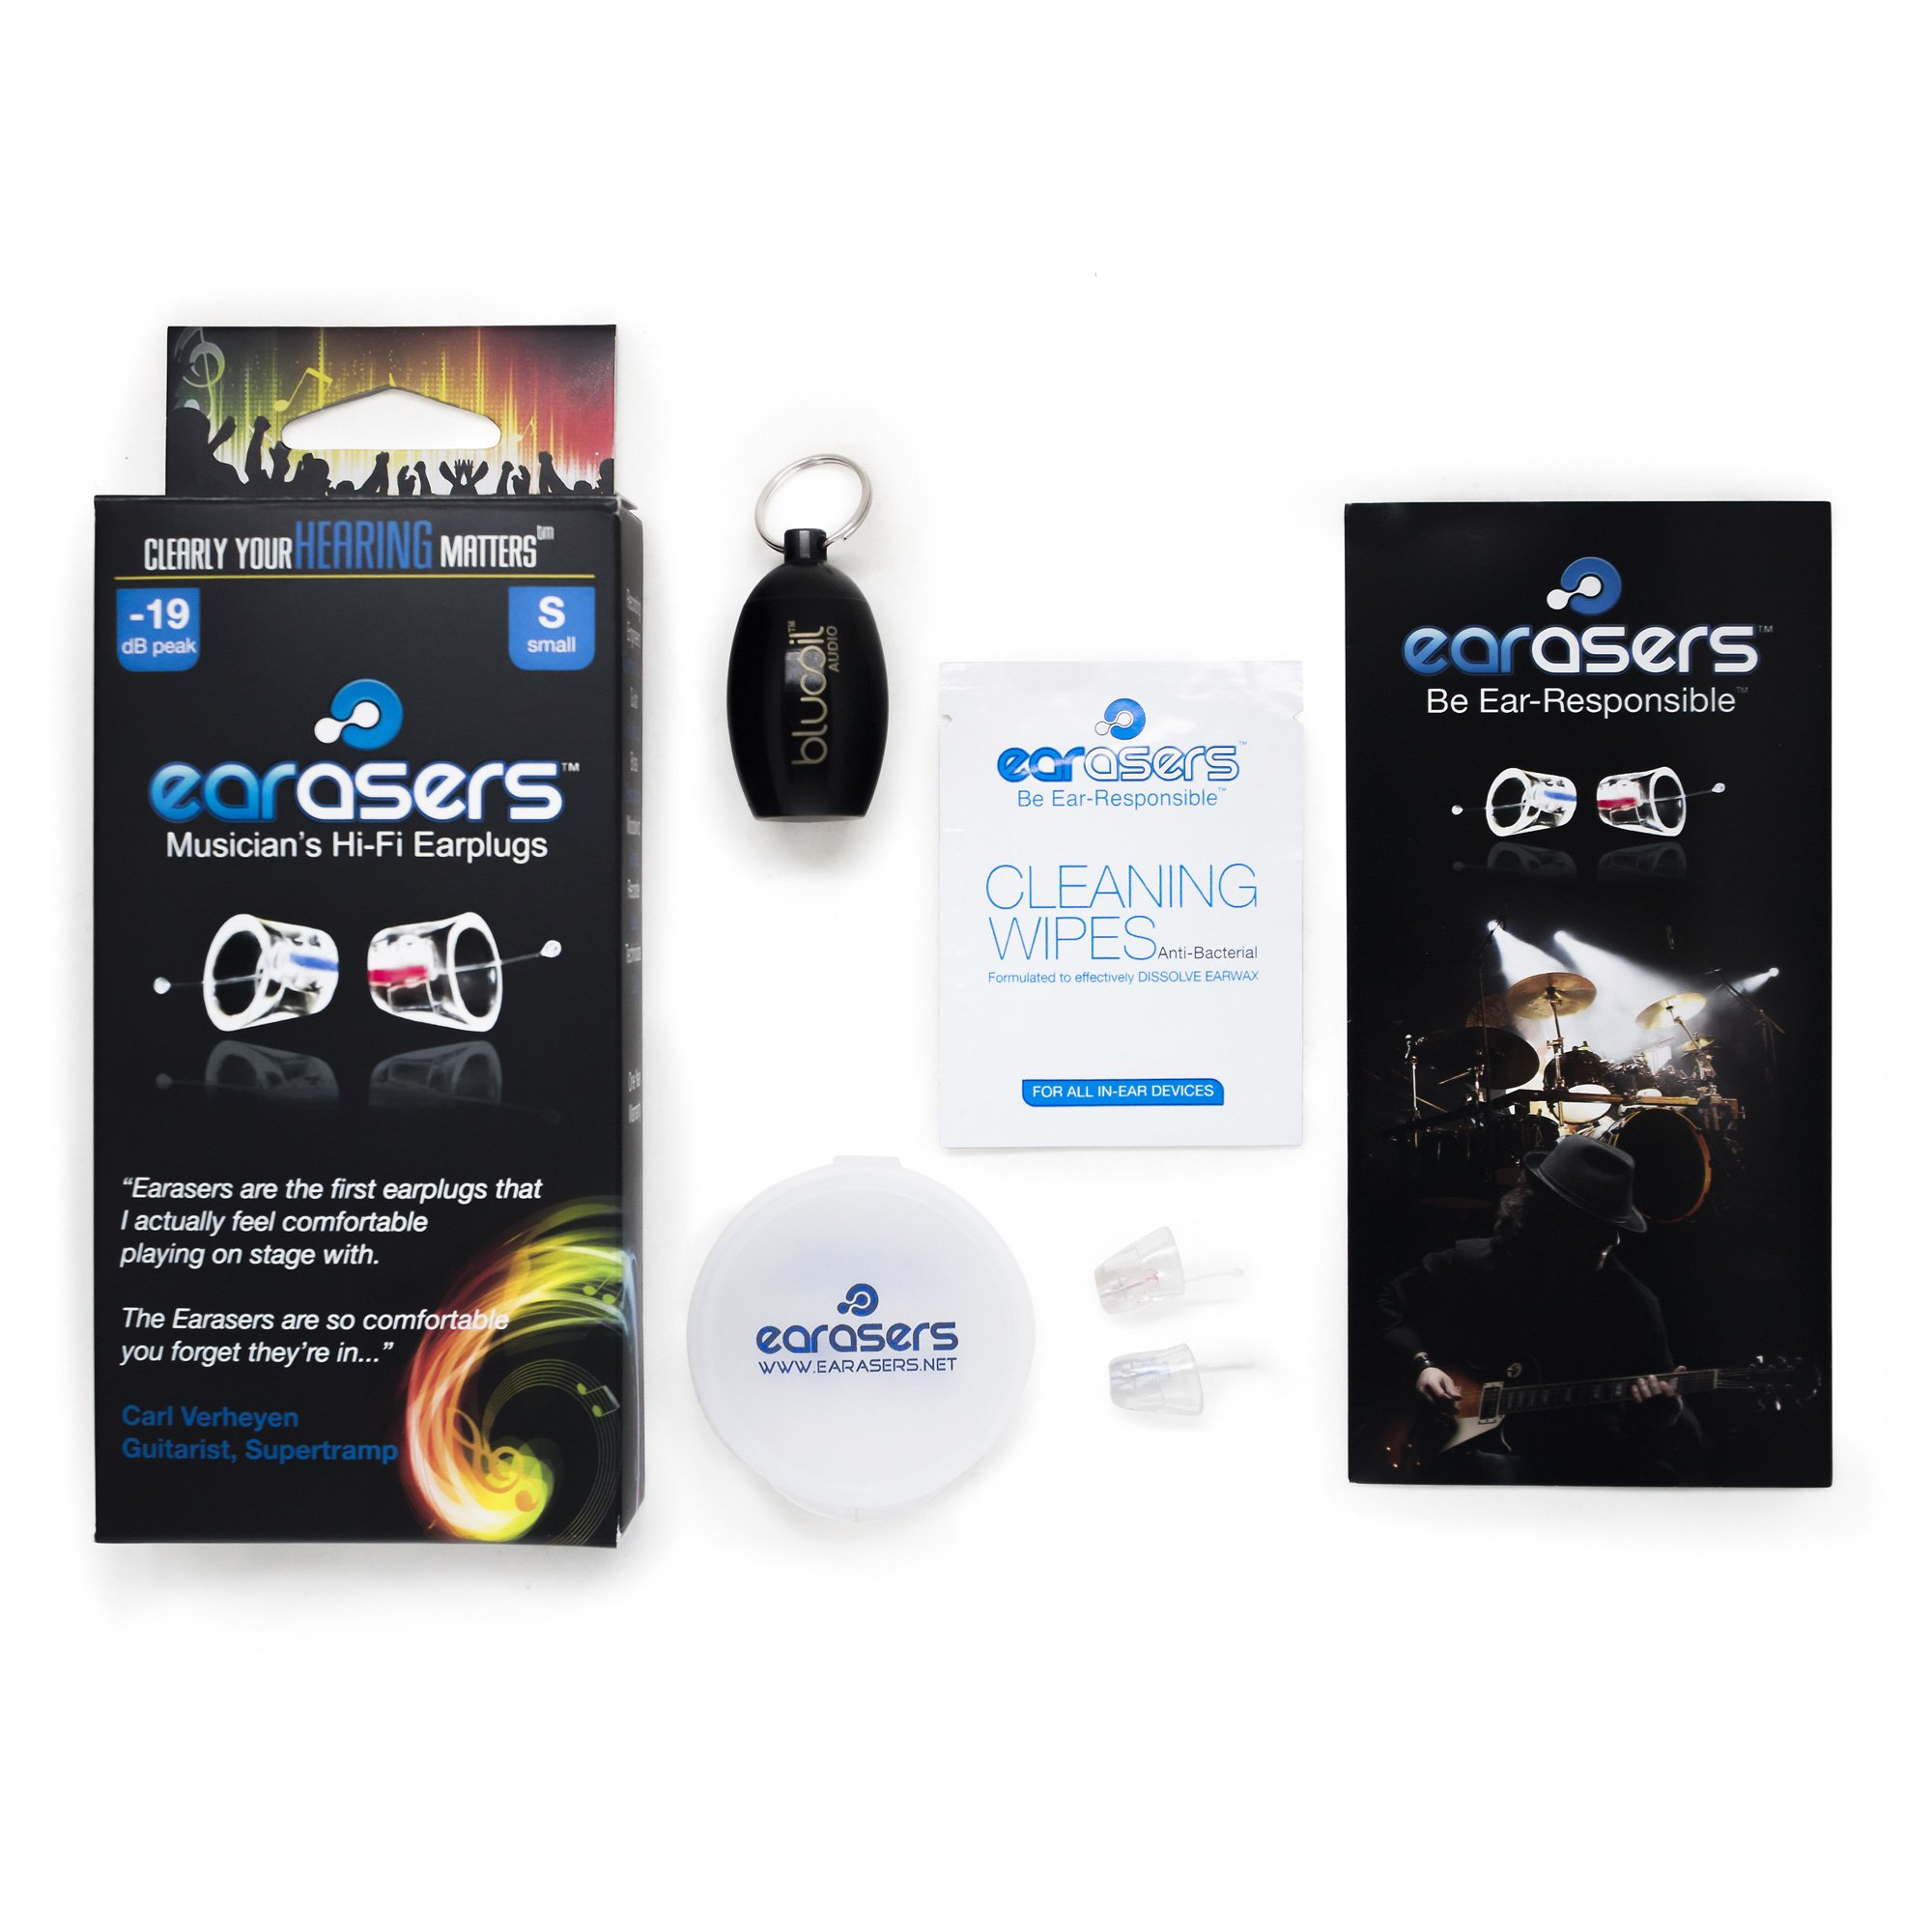 Earasers High Fidelity Musician's Ear Plugs - INCLUDES - Blucoil Limited Edition BLACK Carrying Case (Small)